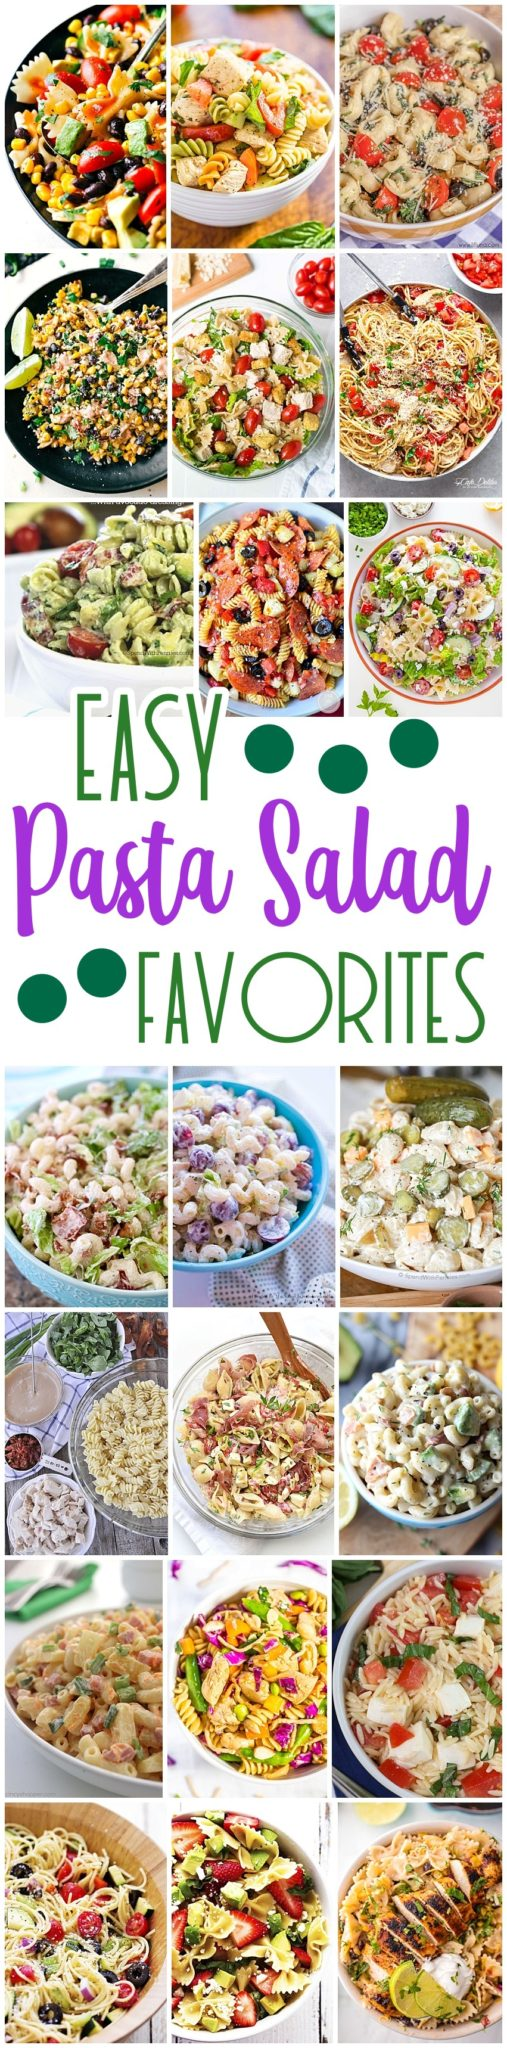 Easy Pasta Salad Recipes - The BEST Yummy Barbecue Side Dishes, Potluck Favorites and Summer Dinner Party Crowd Pleasers- Dreaming in DIY #quickpastasalads #easypastasalads #pastasalad #baconpeapastasalad #bacon #pasta #potluck #barbecue #BBQ #partyfood #tailgating